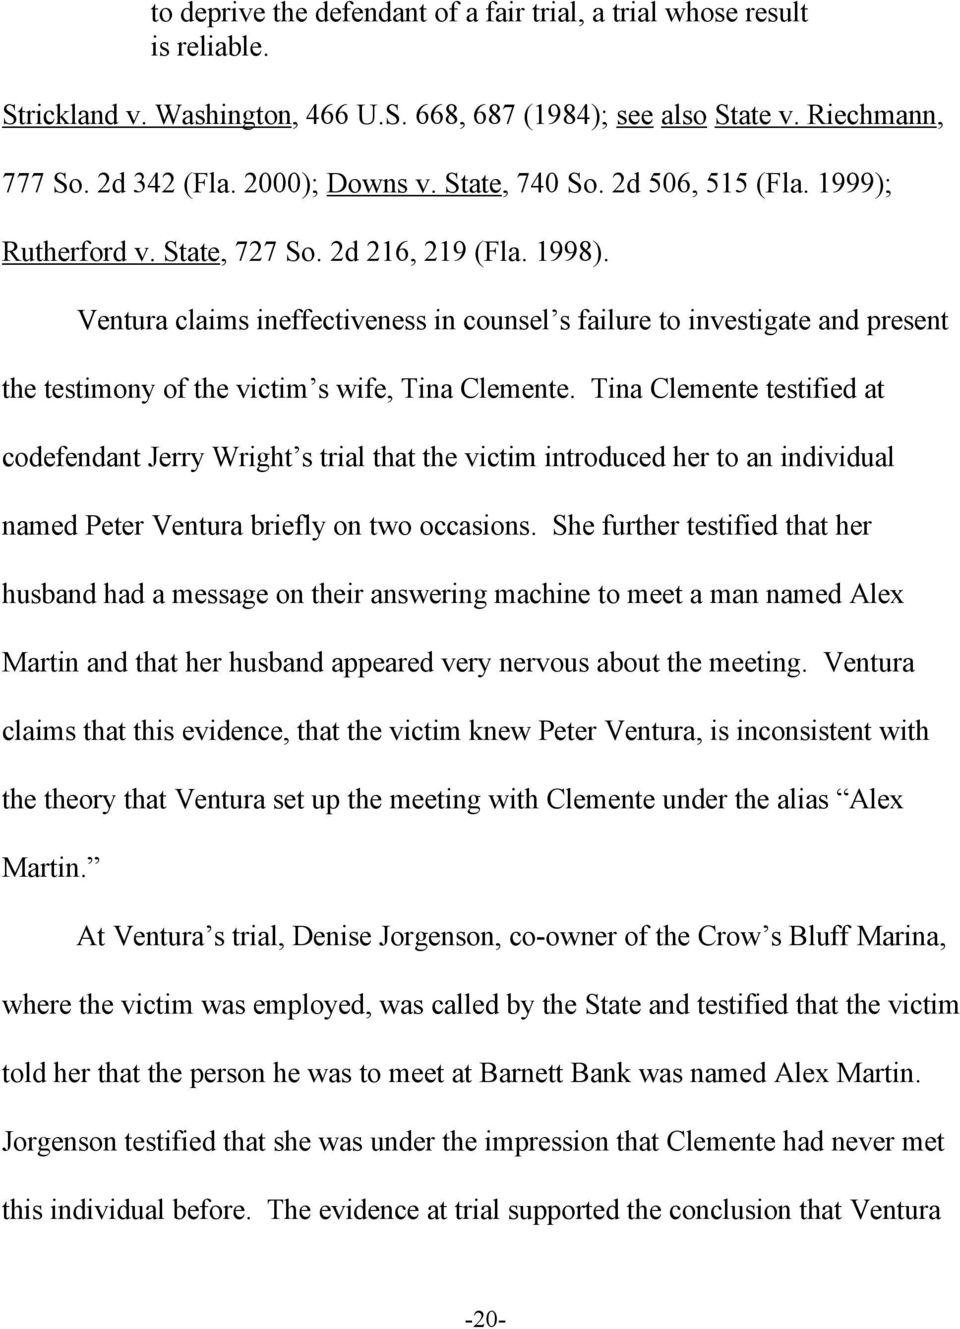 Ventura claims ineffectiveness in counsel s failure to investigate and present the testimony of the victim s wife, Tina Clemente.